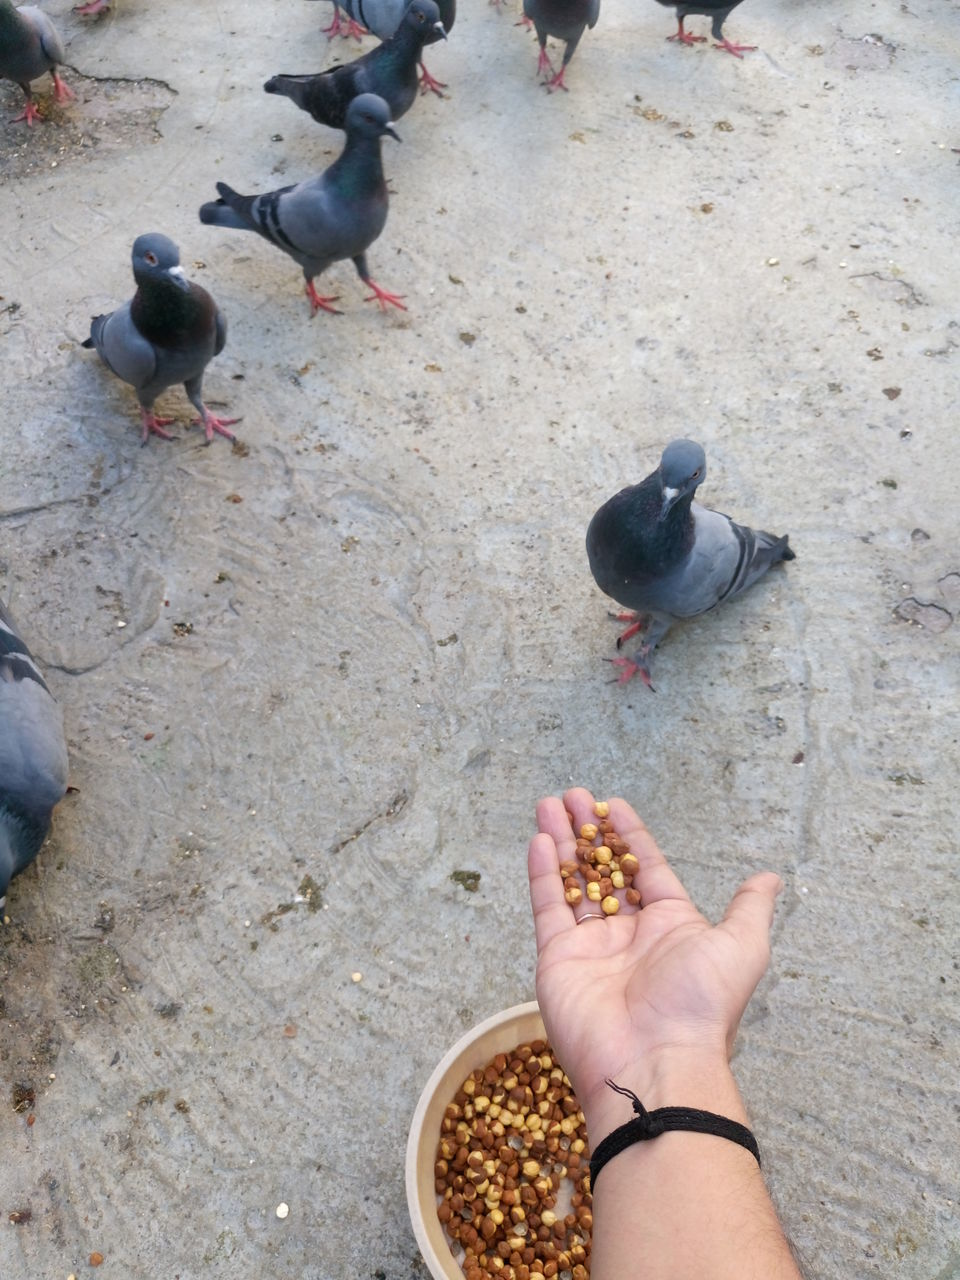 bird, animal themes, high angle view, real people, human body part, human hand, animals in the wild, personal perspective, animal wildlife, large group of animals, day, outdoors, one person, lifestyles, food, perching, people